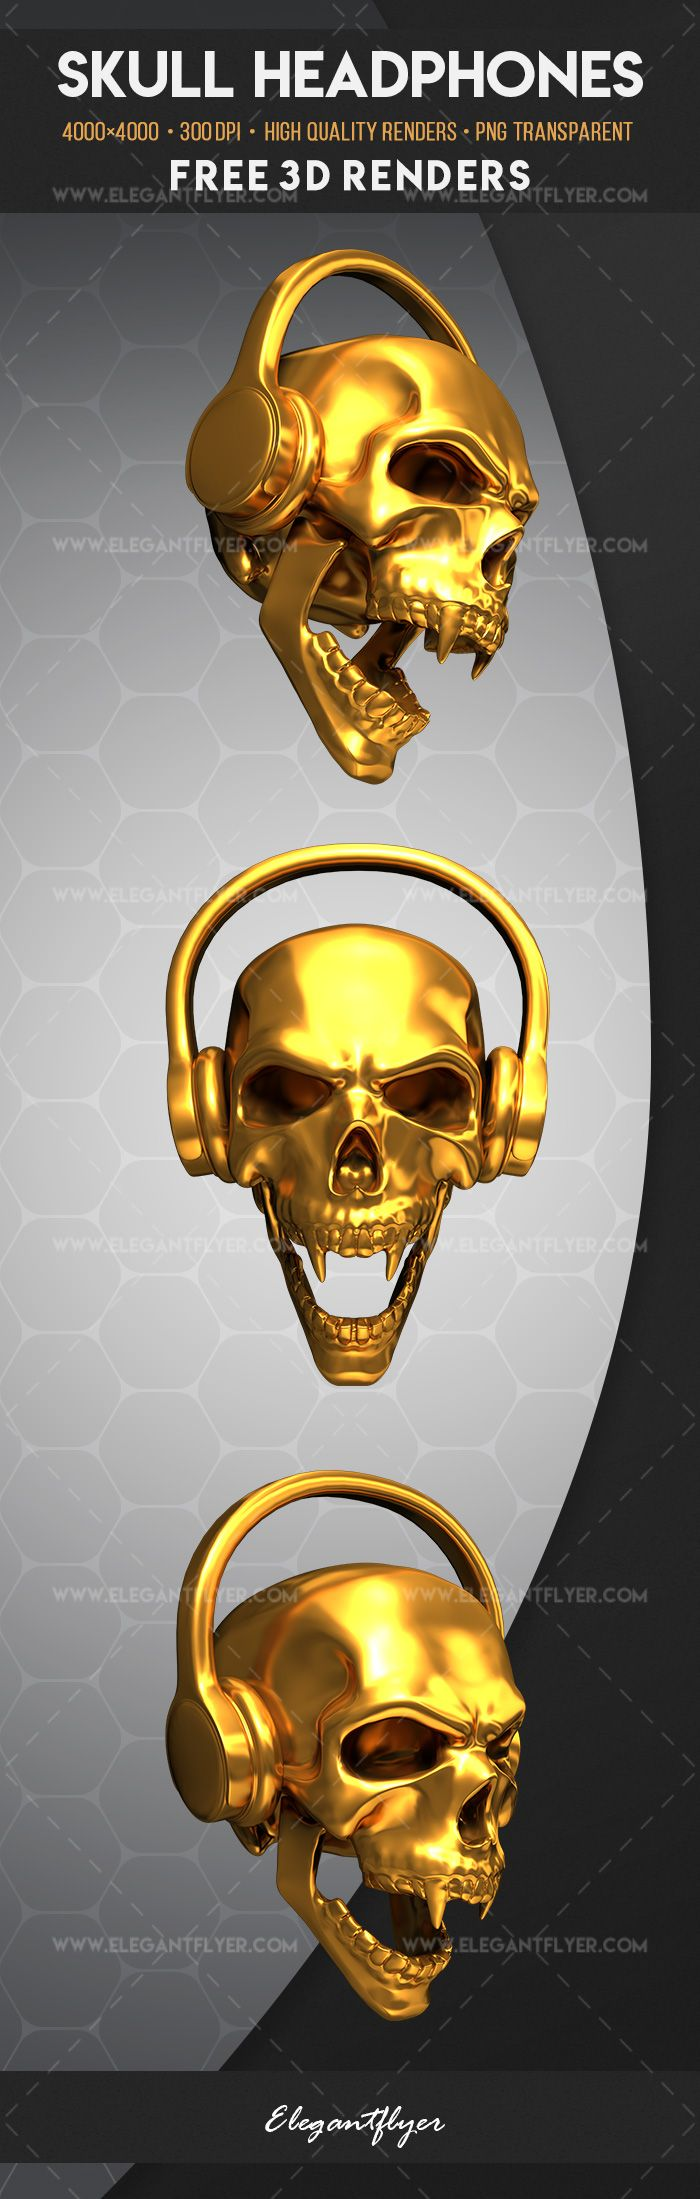 Skull Headphones – Free 3d Render Templates